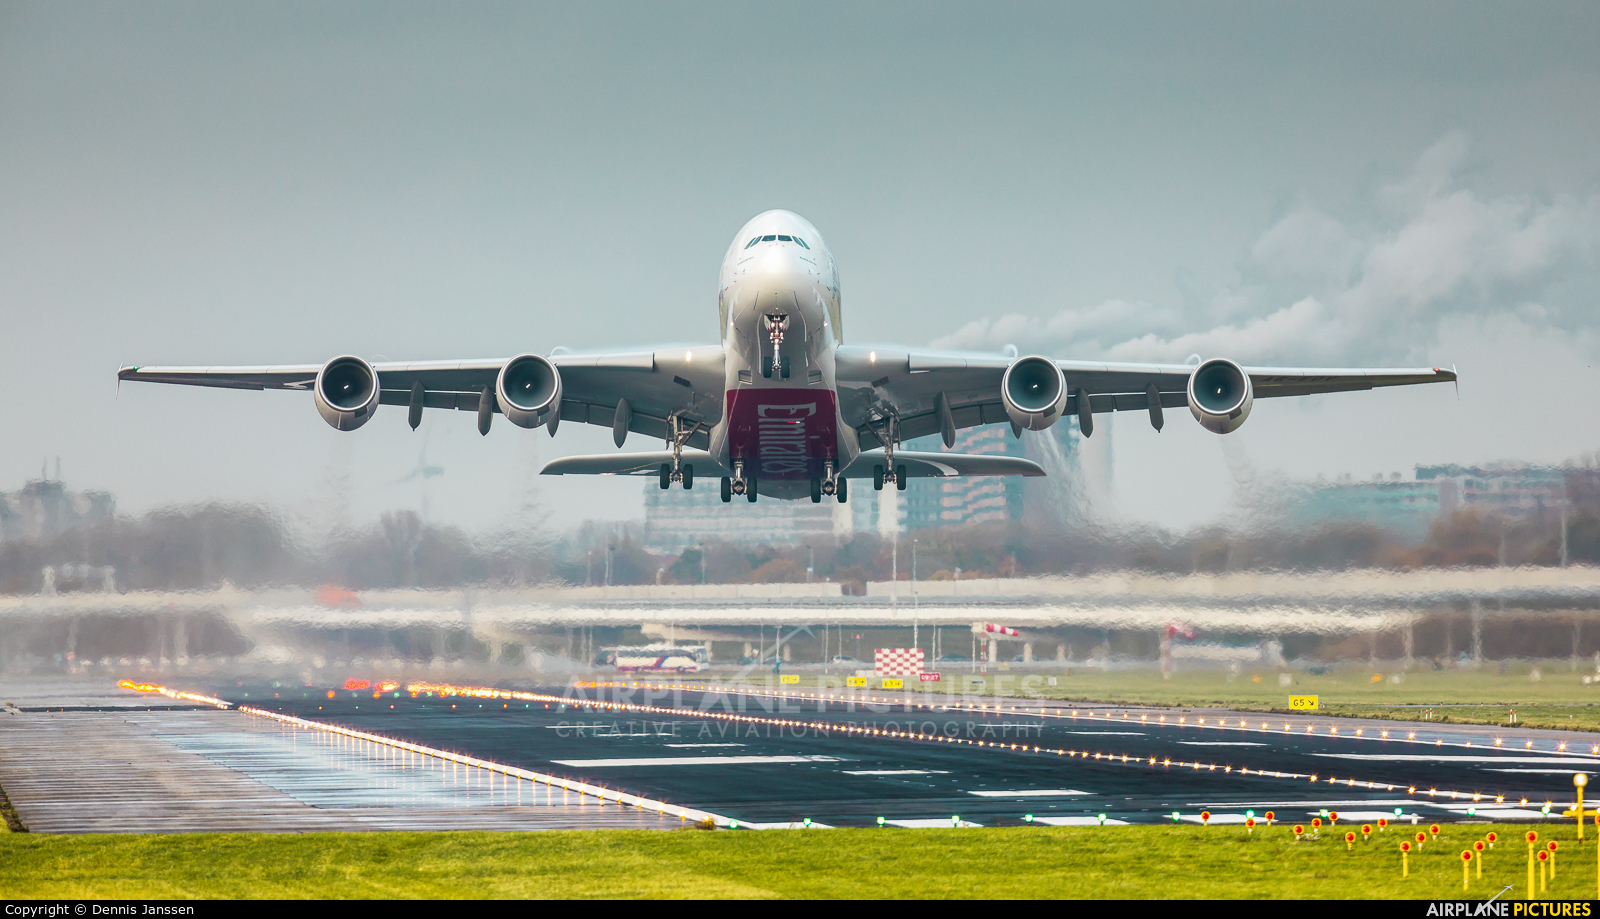 Emirates Airlines A6-EOV aircraft at Amsterdam - Schiphol